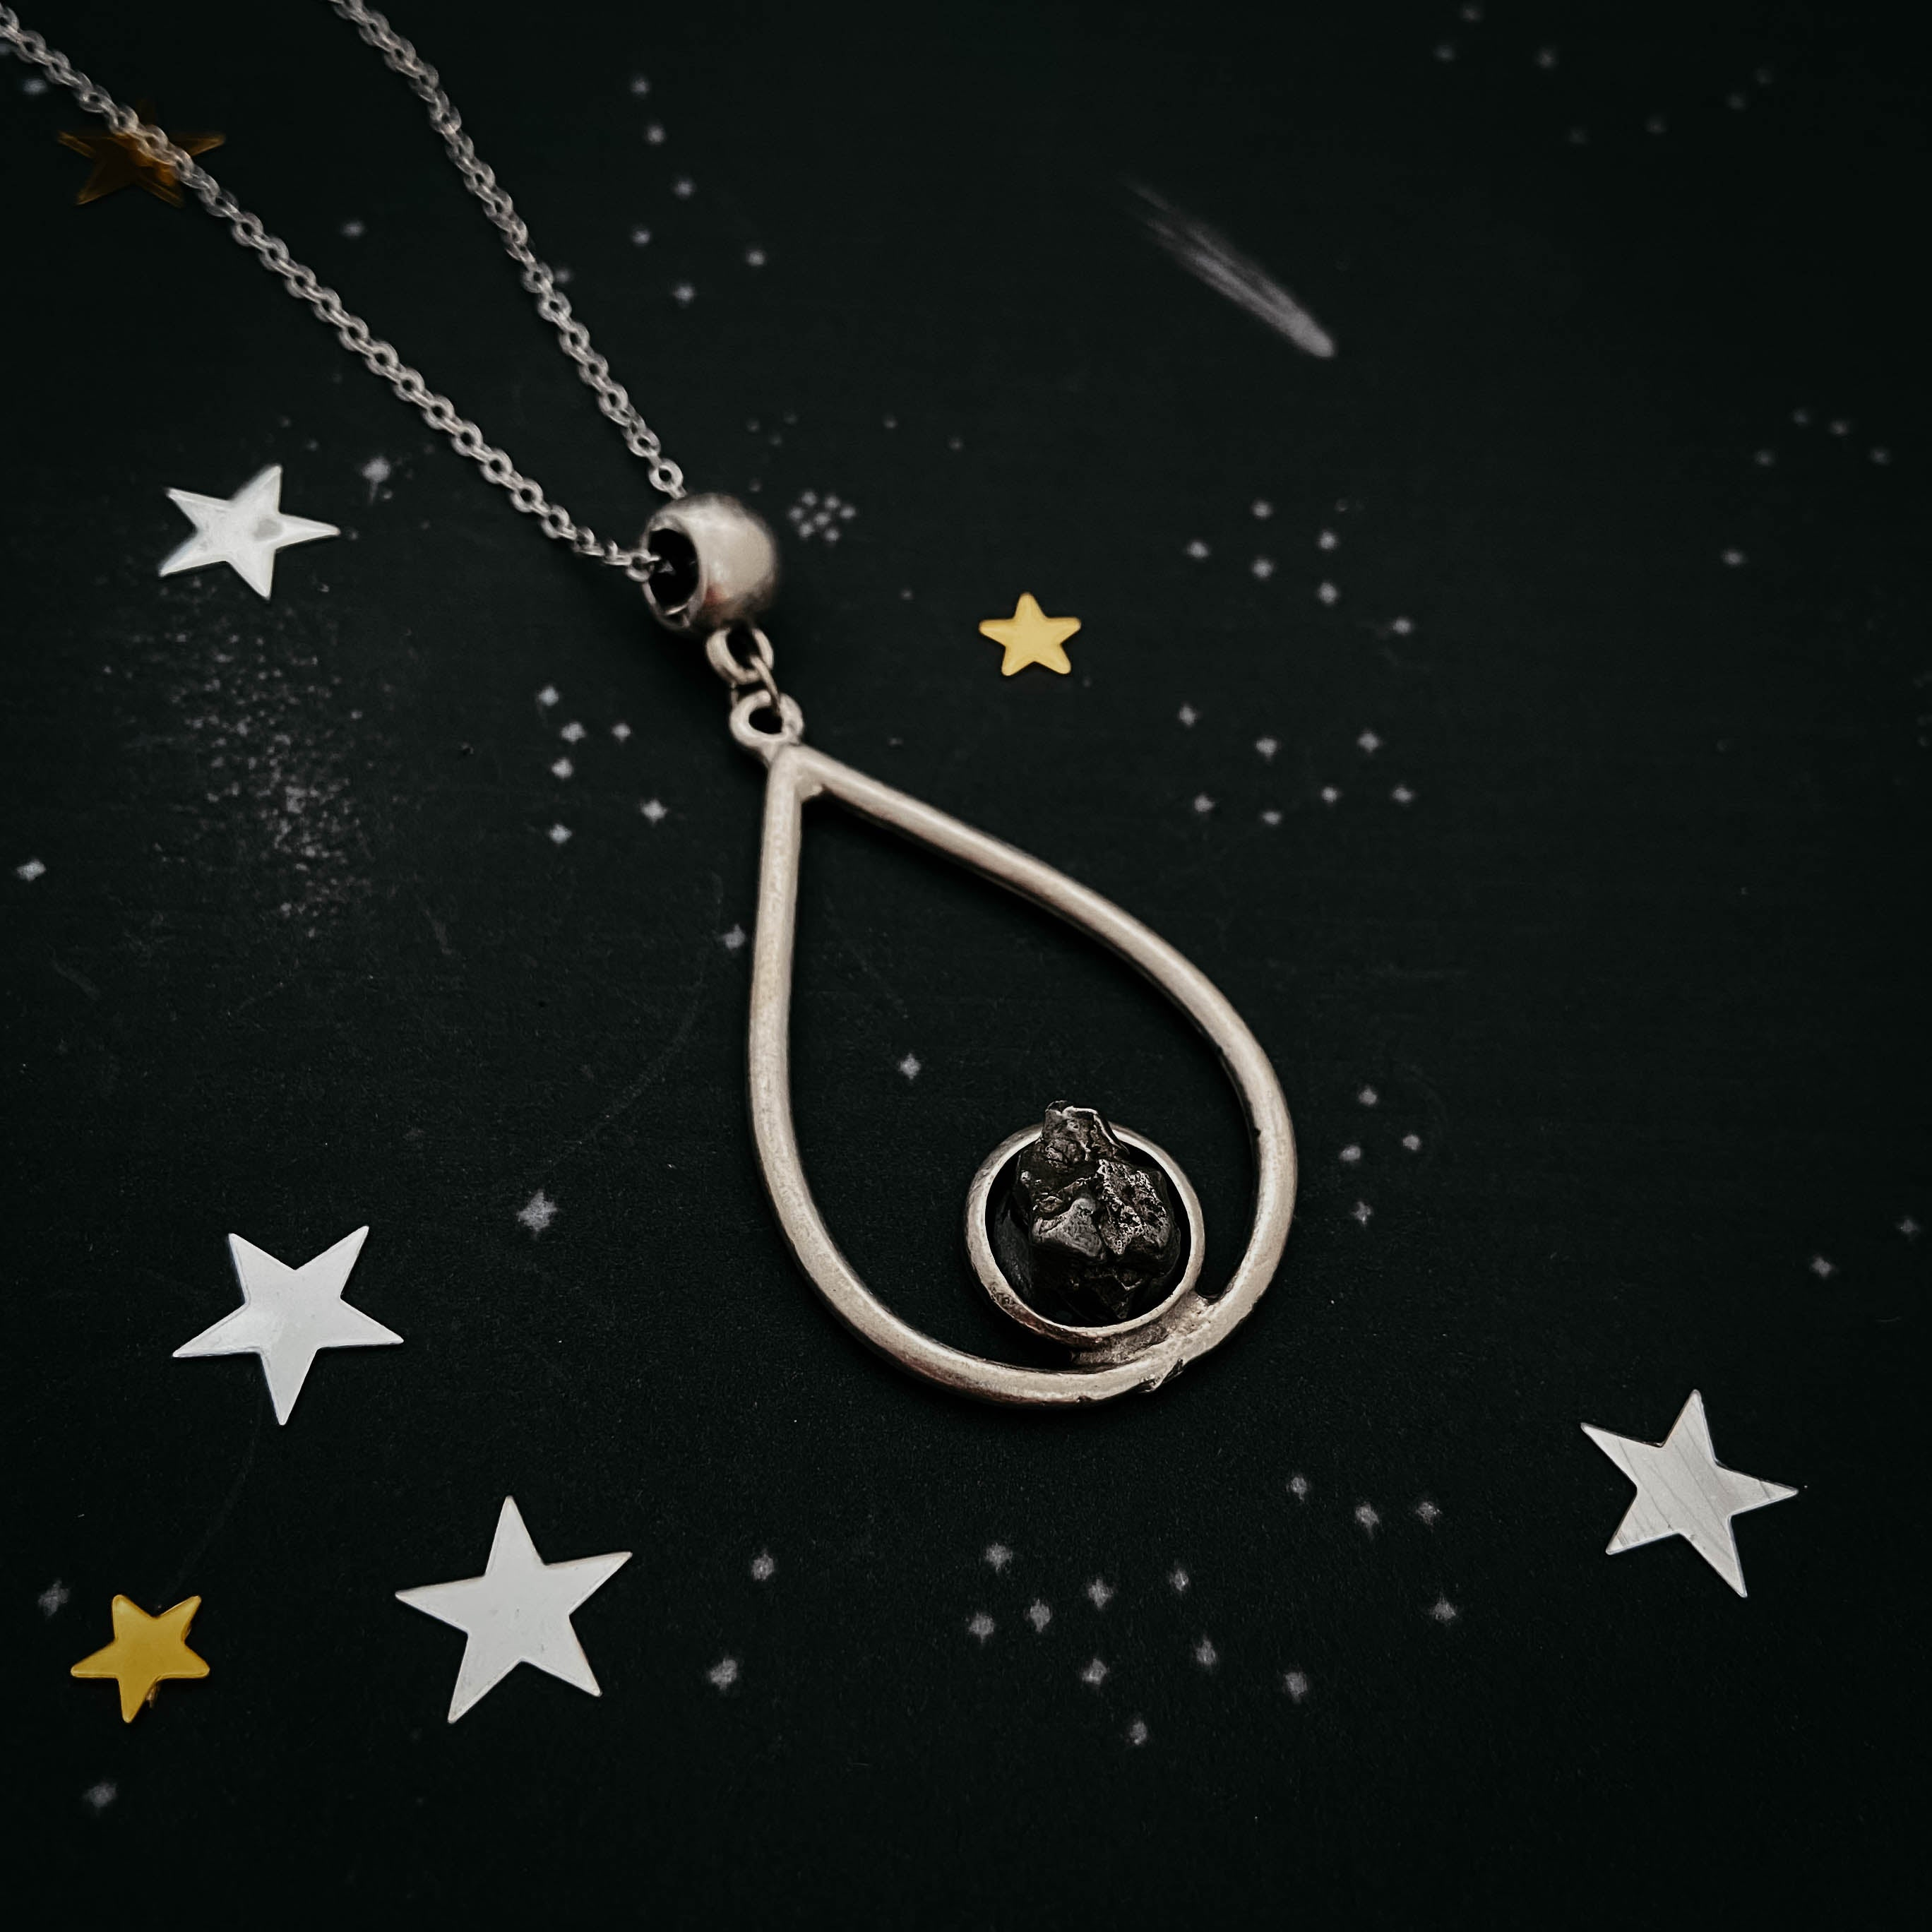 Teardrop shaped pendant necklace set with authentic campo del cielo meteorite - Handcrafted by Yugen